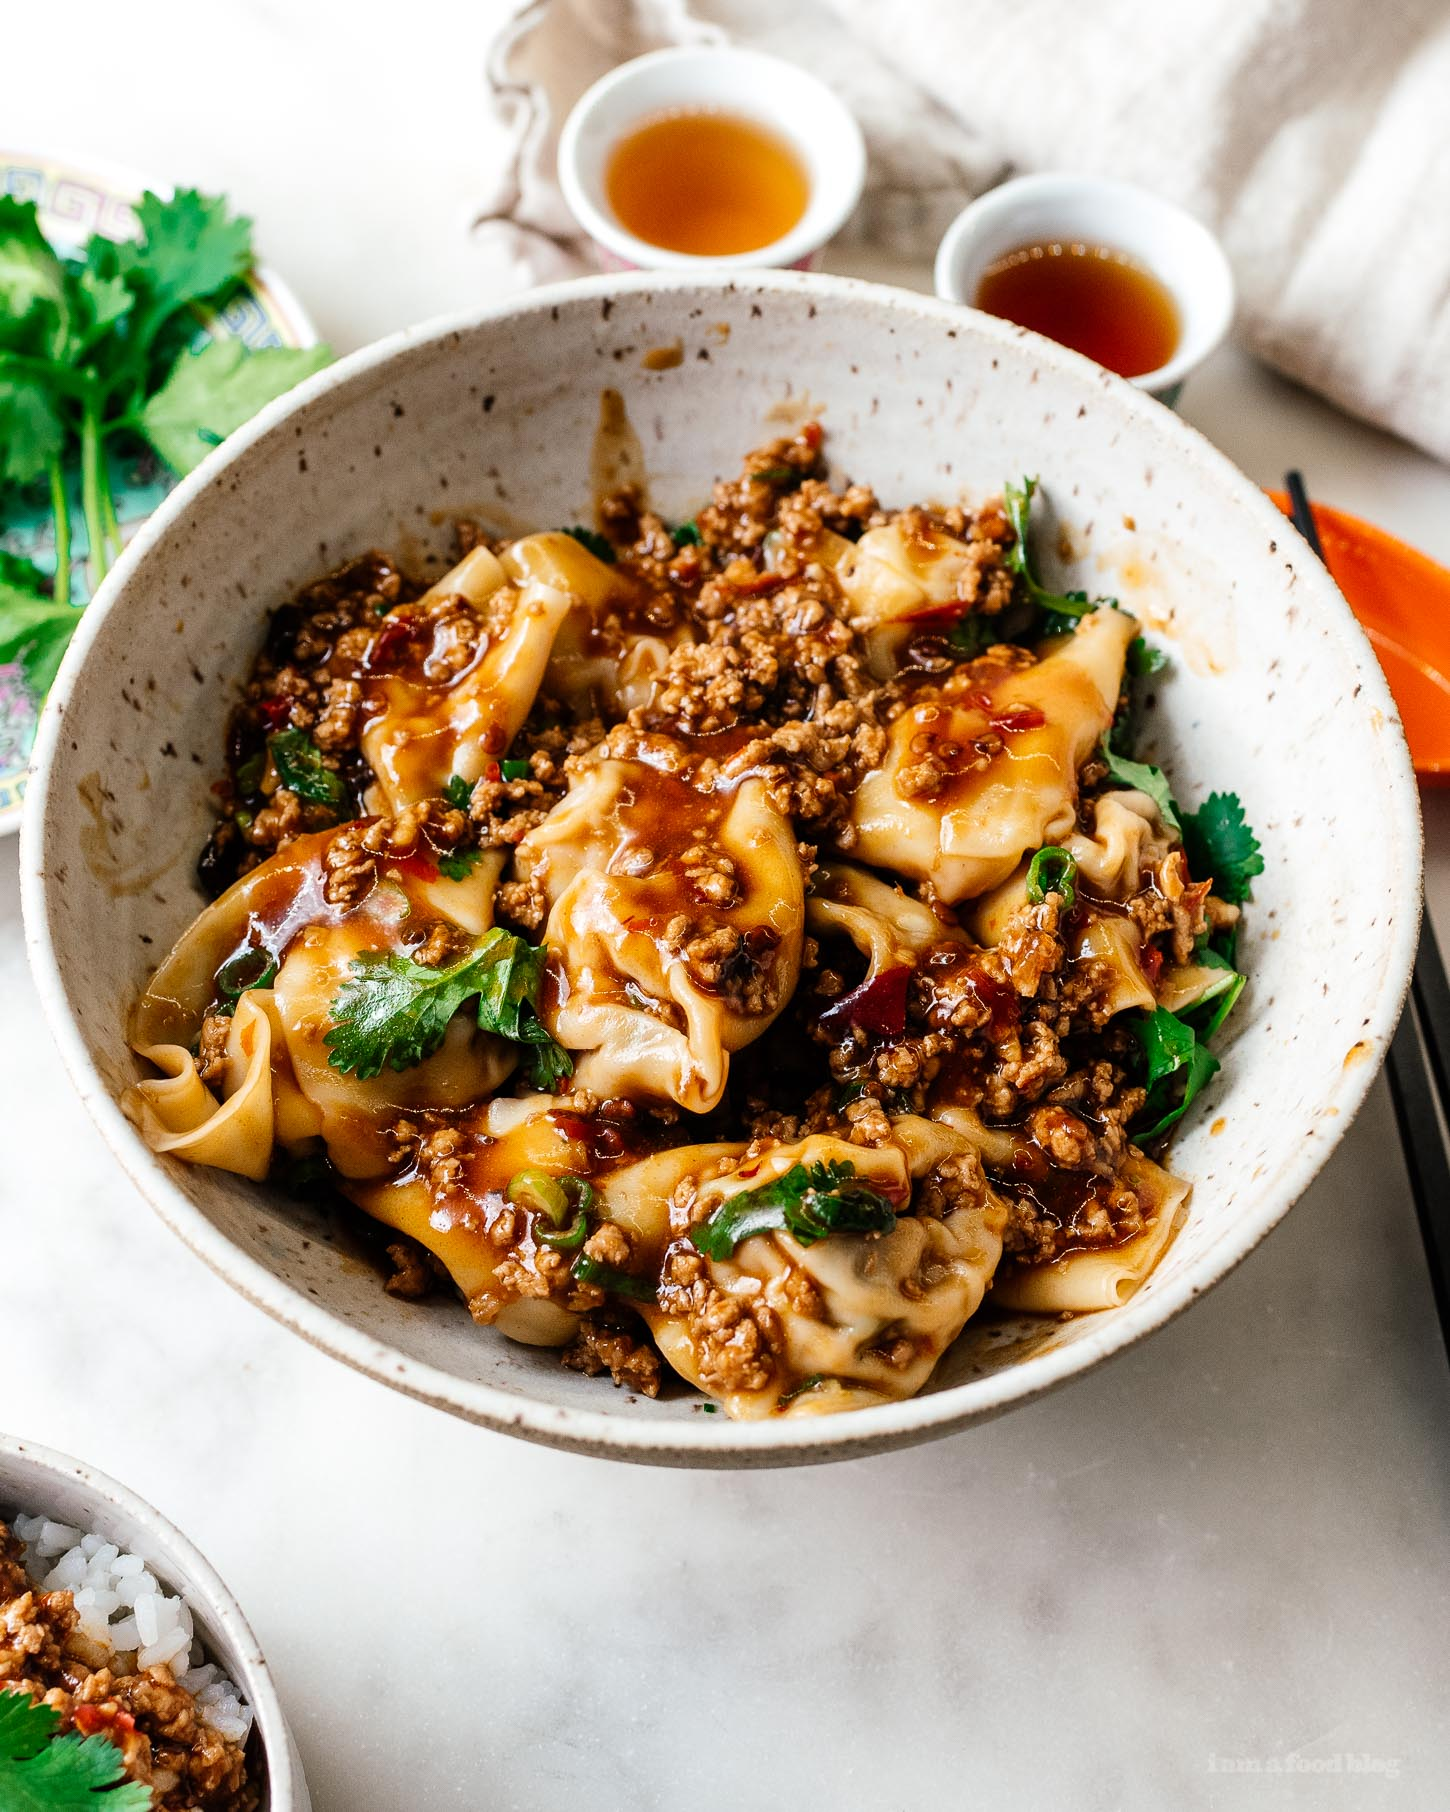 These spicy Sichuan turkey wontons in mapo sauce are a fun twist on wontons in red chili oil #wonton #sichuan #turkeywonton #turkey #spicy #chinesefood #recipes